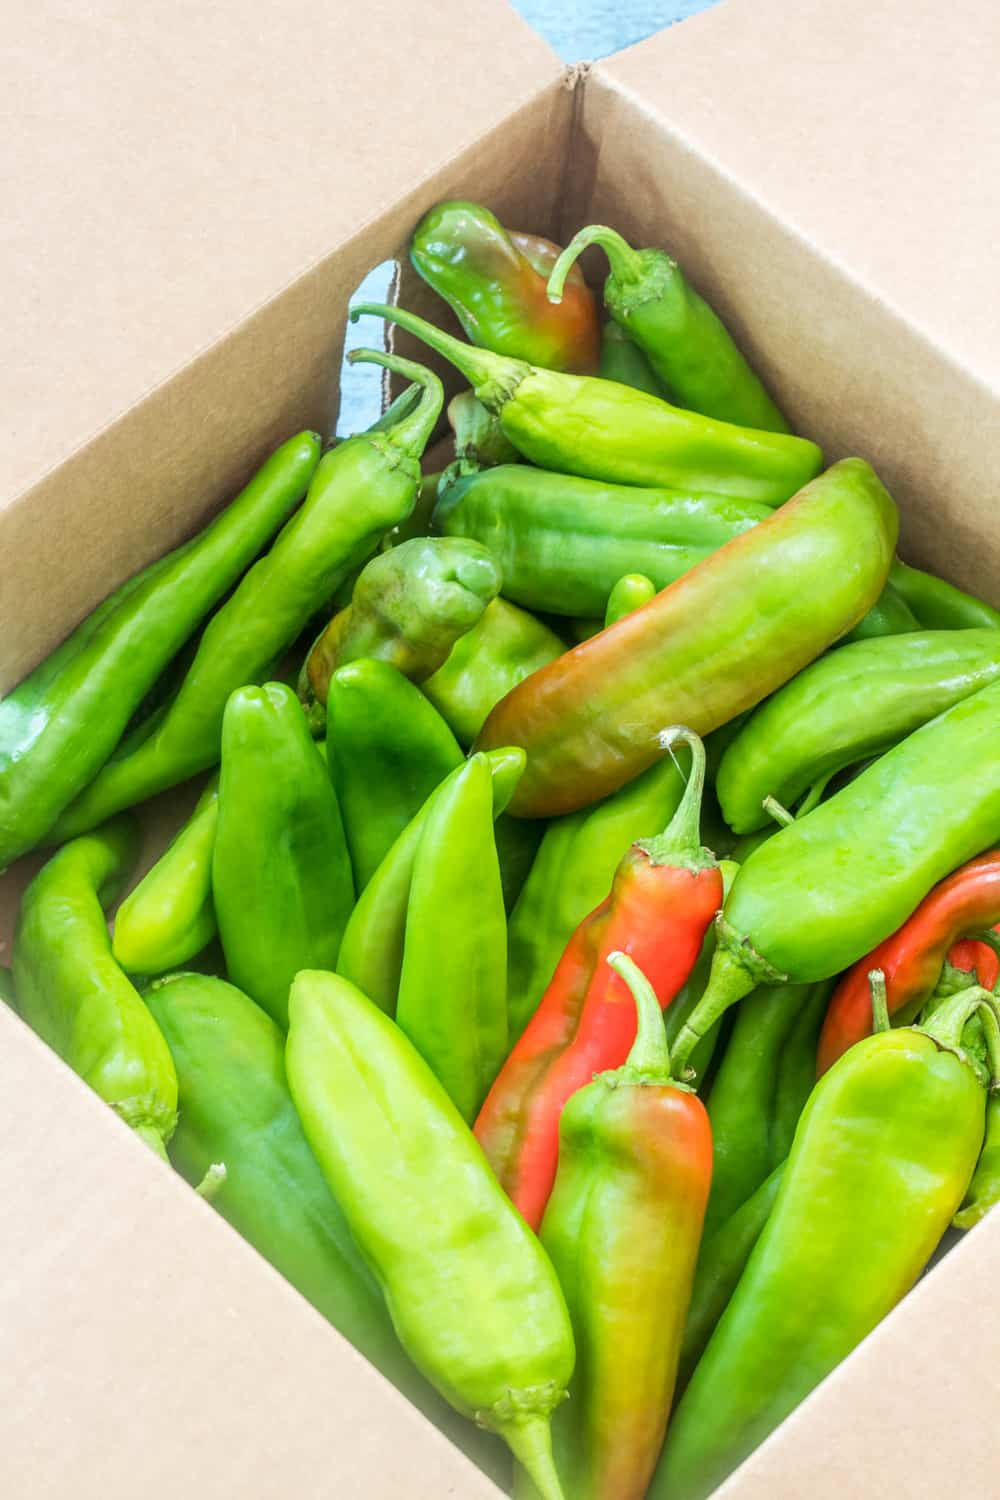 A box of fresh Hatch green chiles prior to roasting.